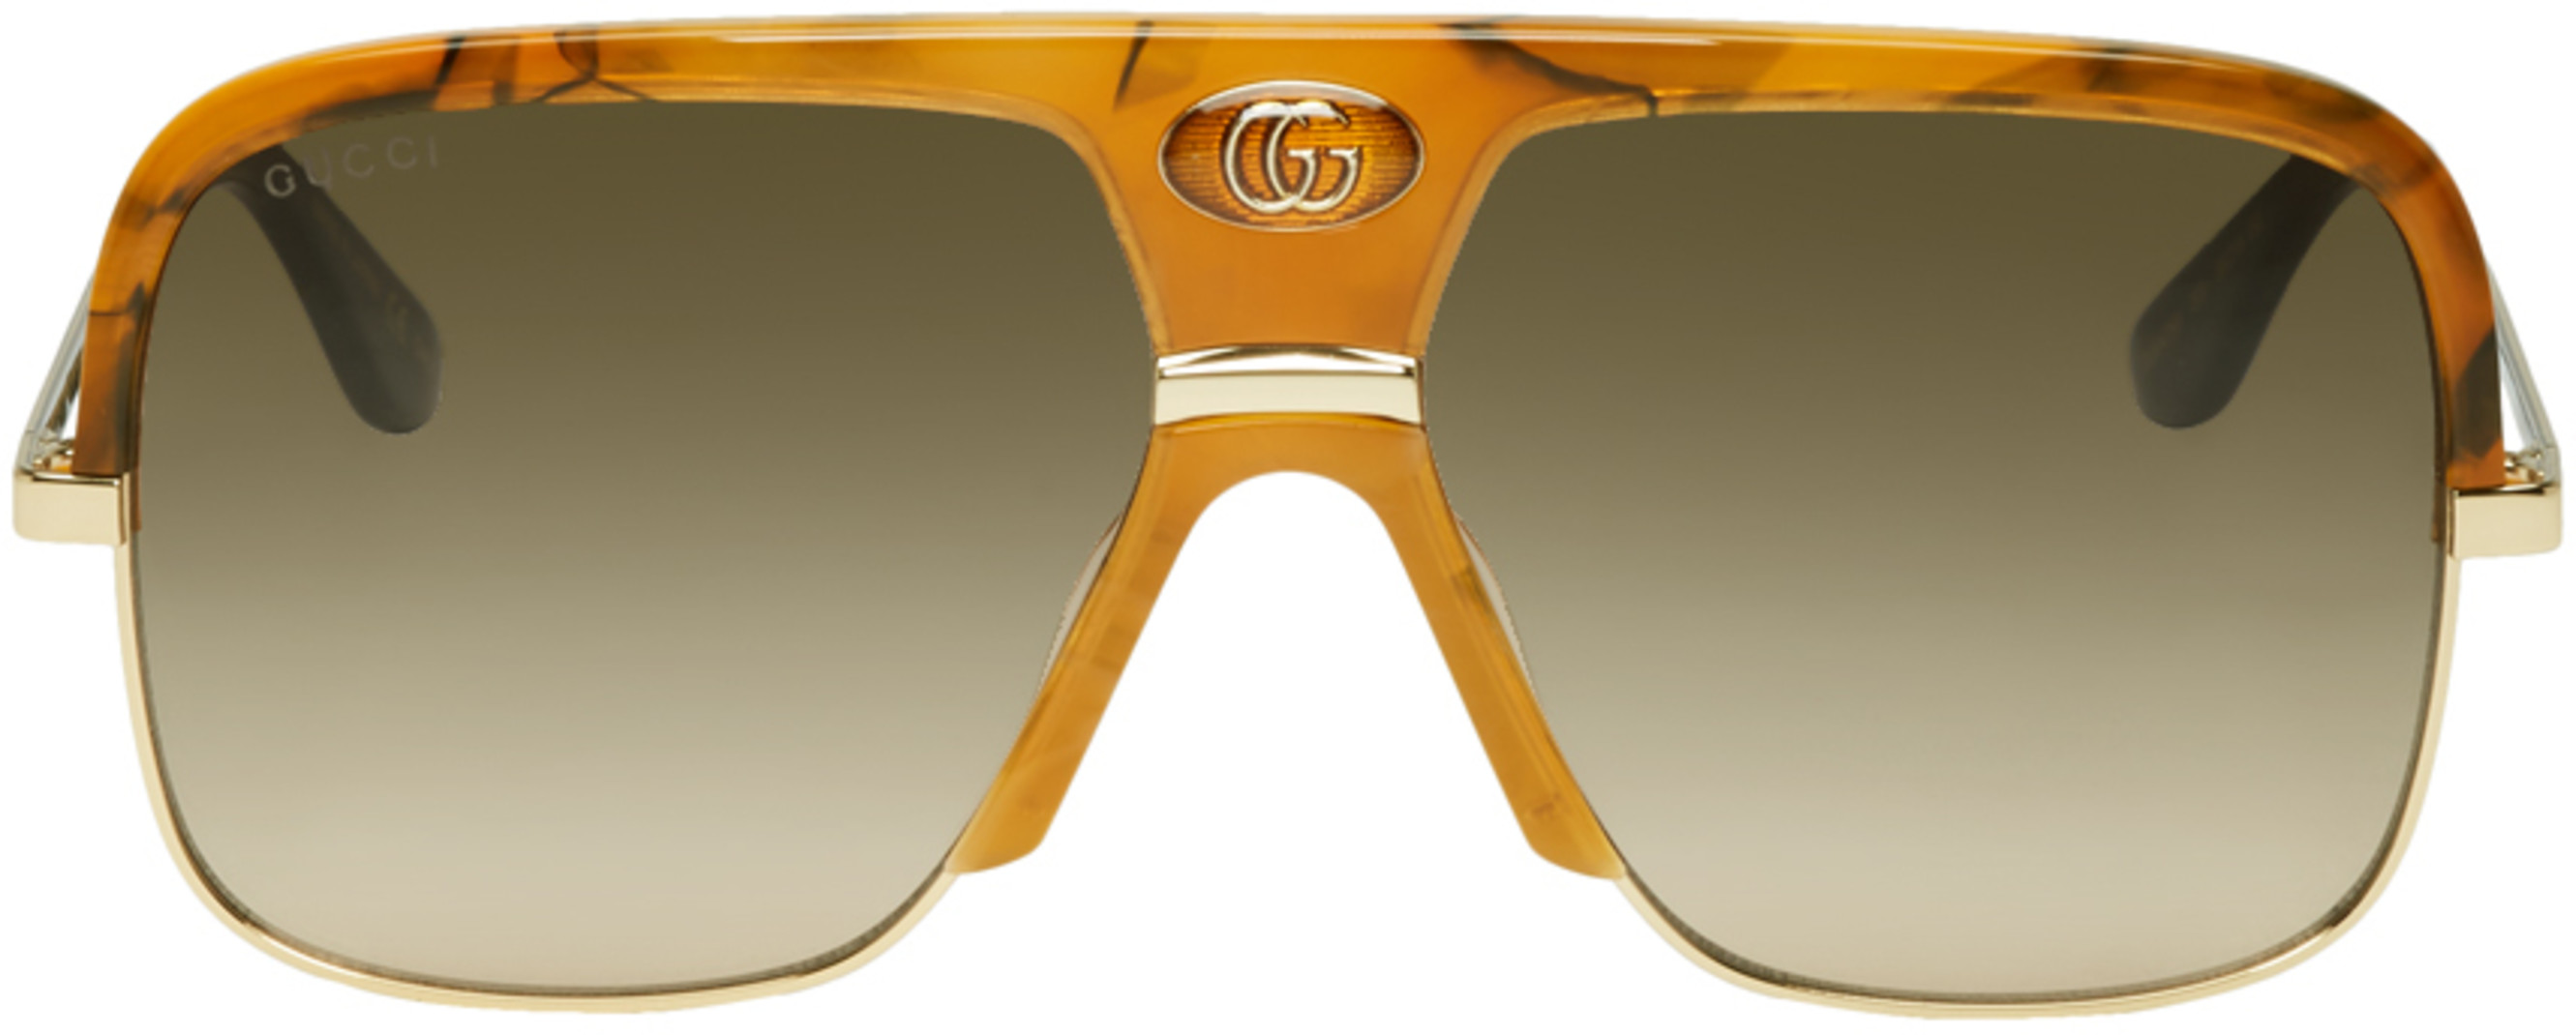 3c3da1d0aeb Gucci sunglasses for Men